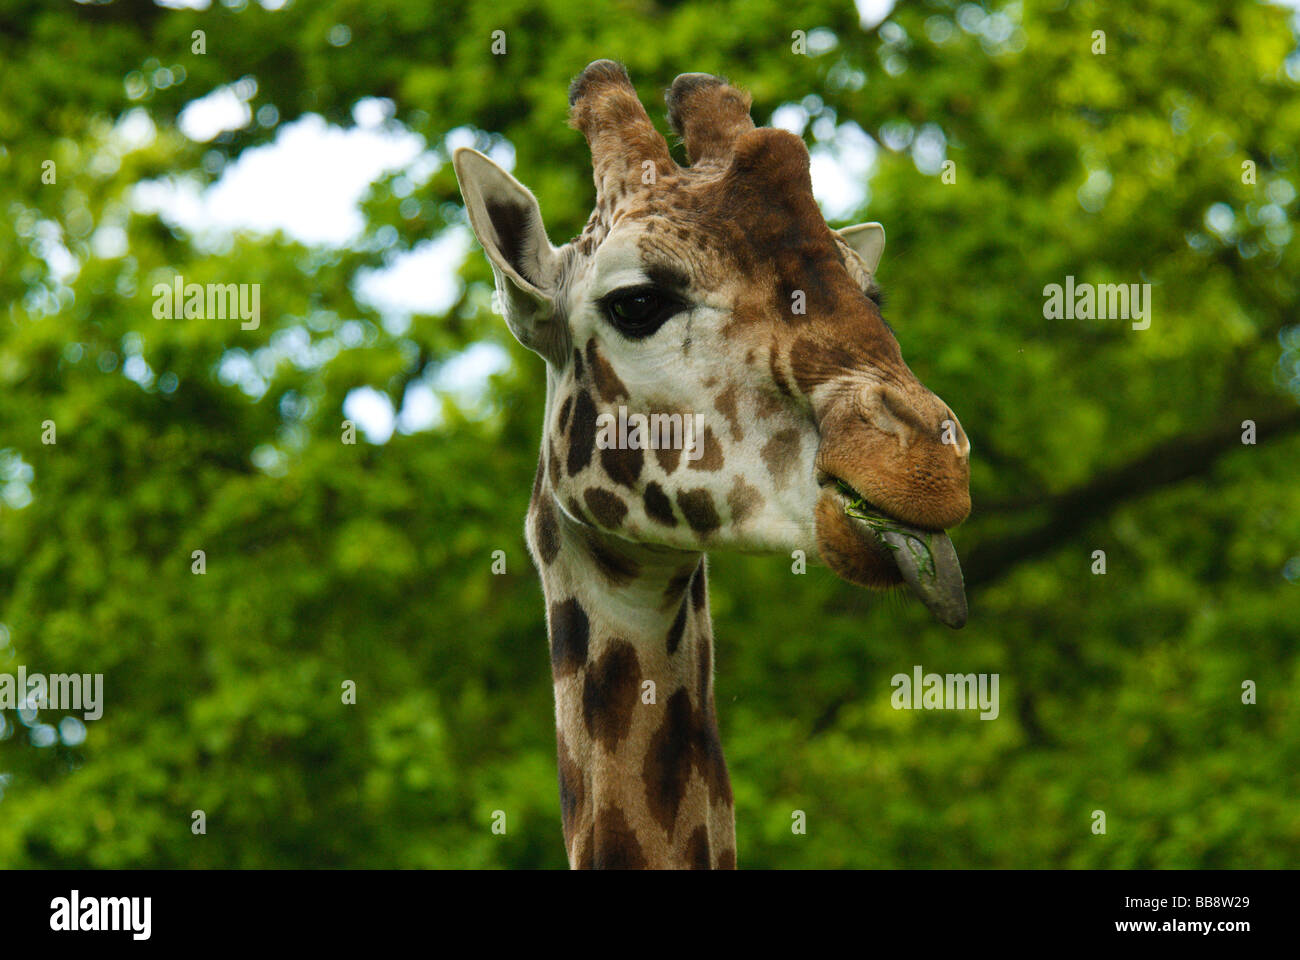 A giraffe sticks it's tongue out. - Stock Image